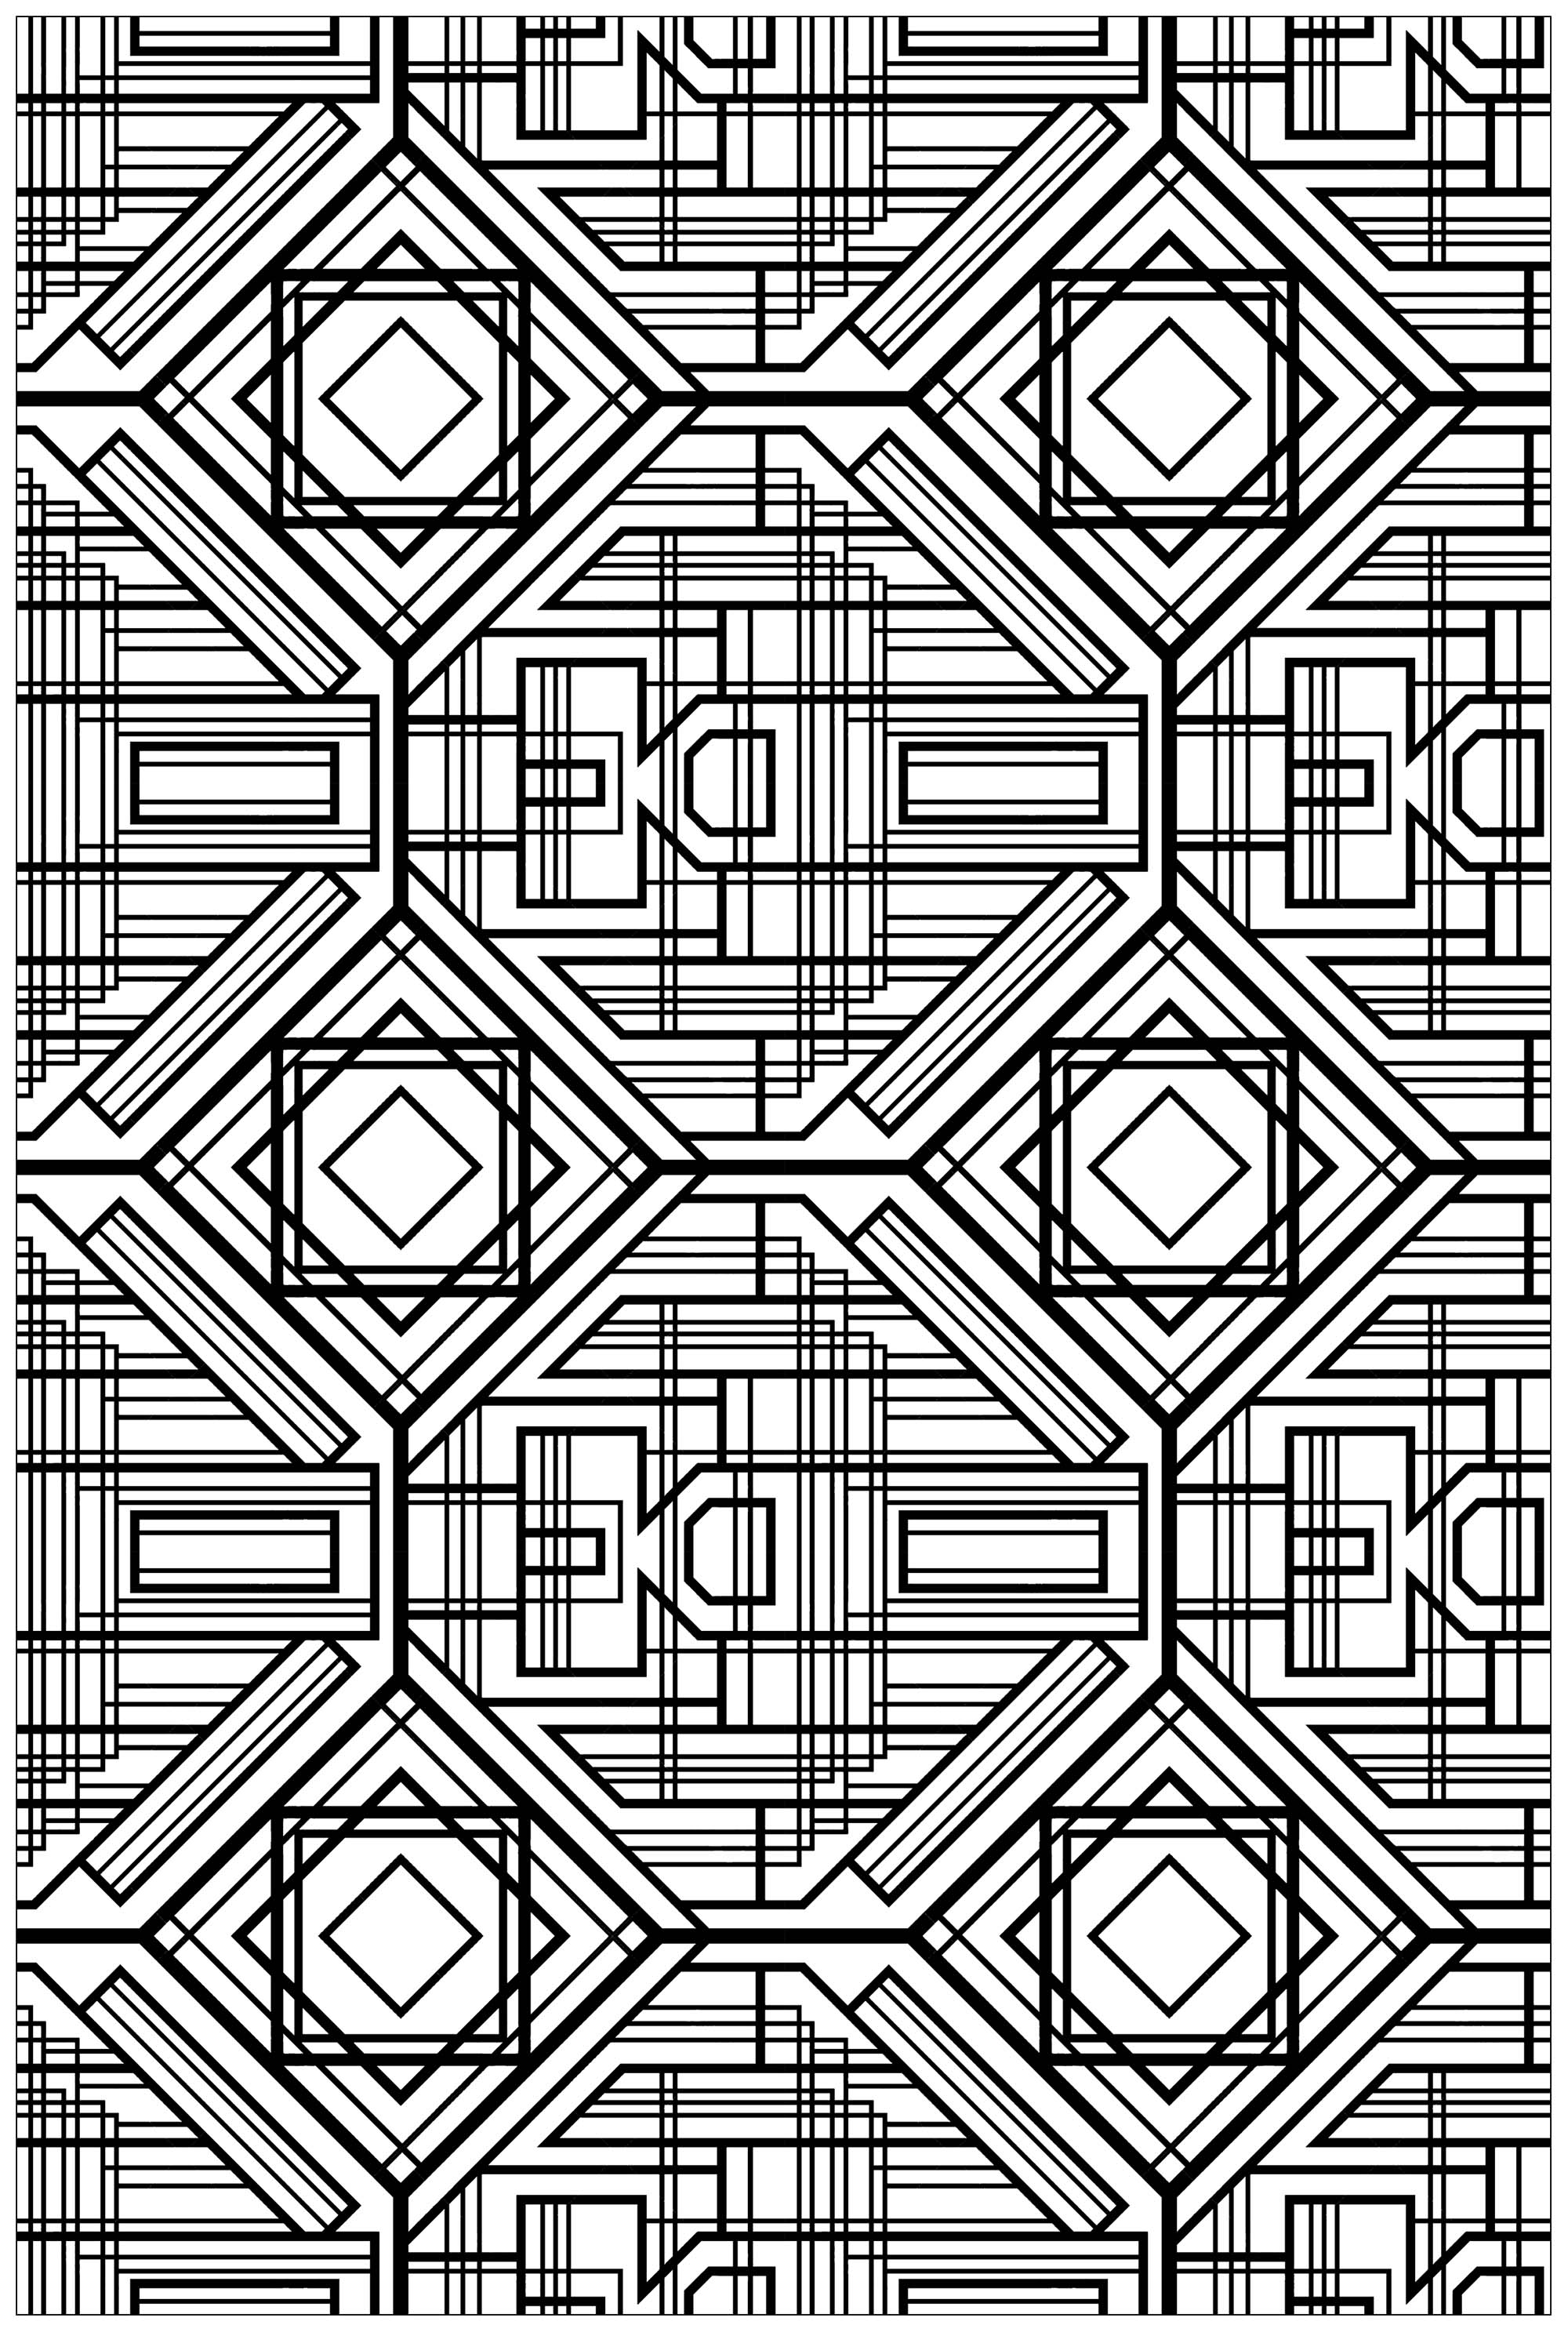 Art deco plex pattern Art